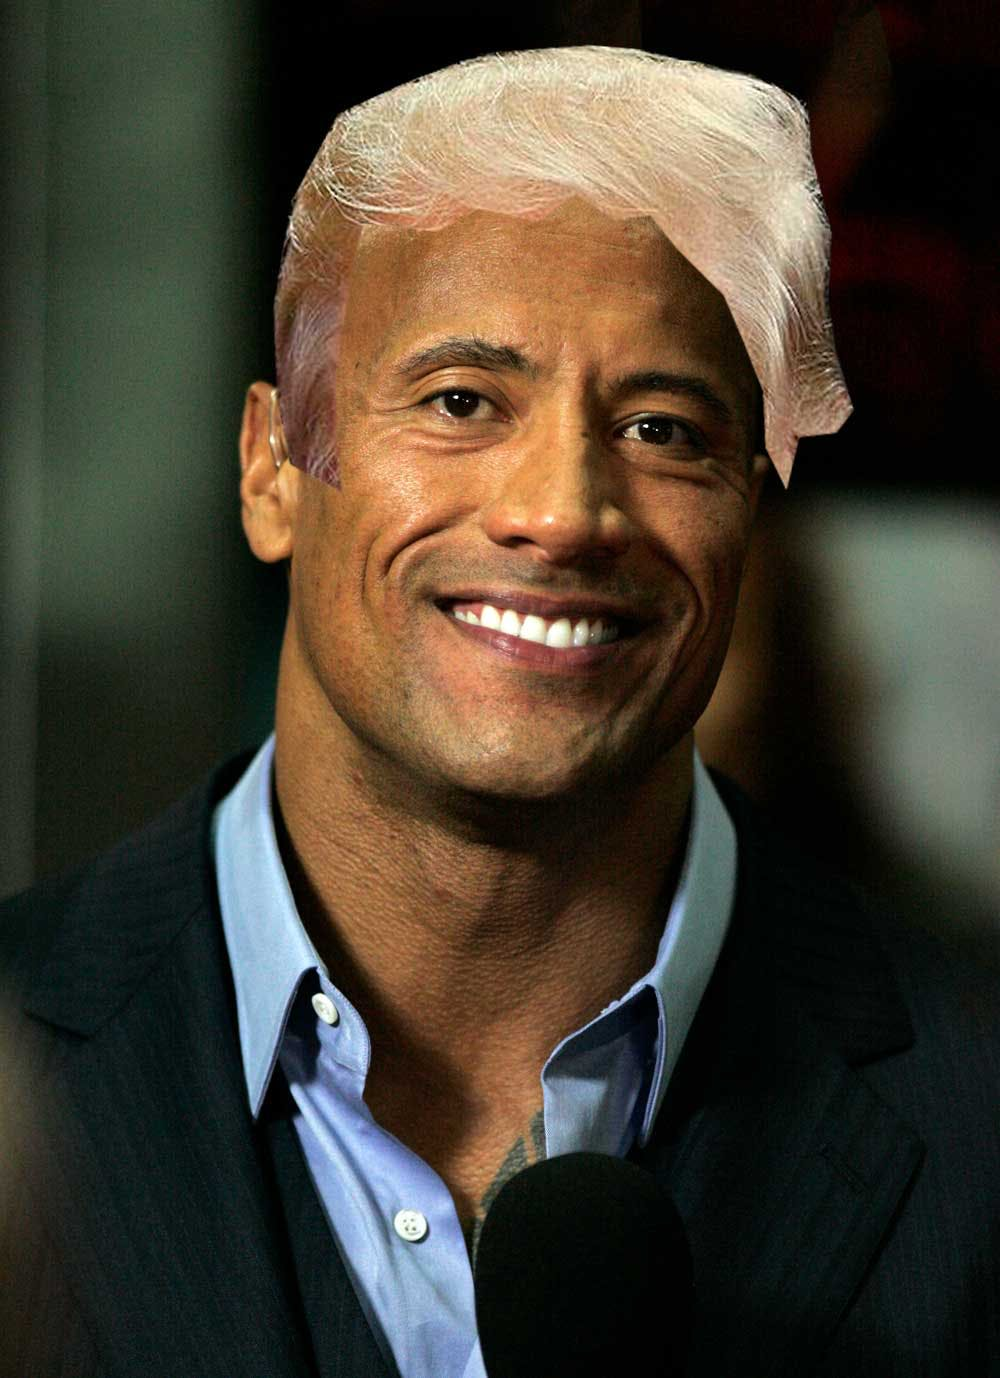 The Rock with DOnald Trump's hair